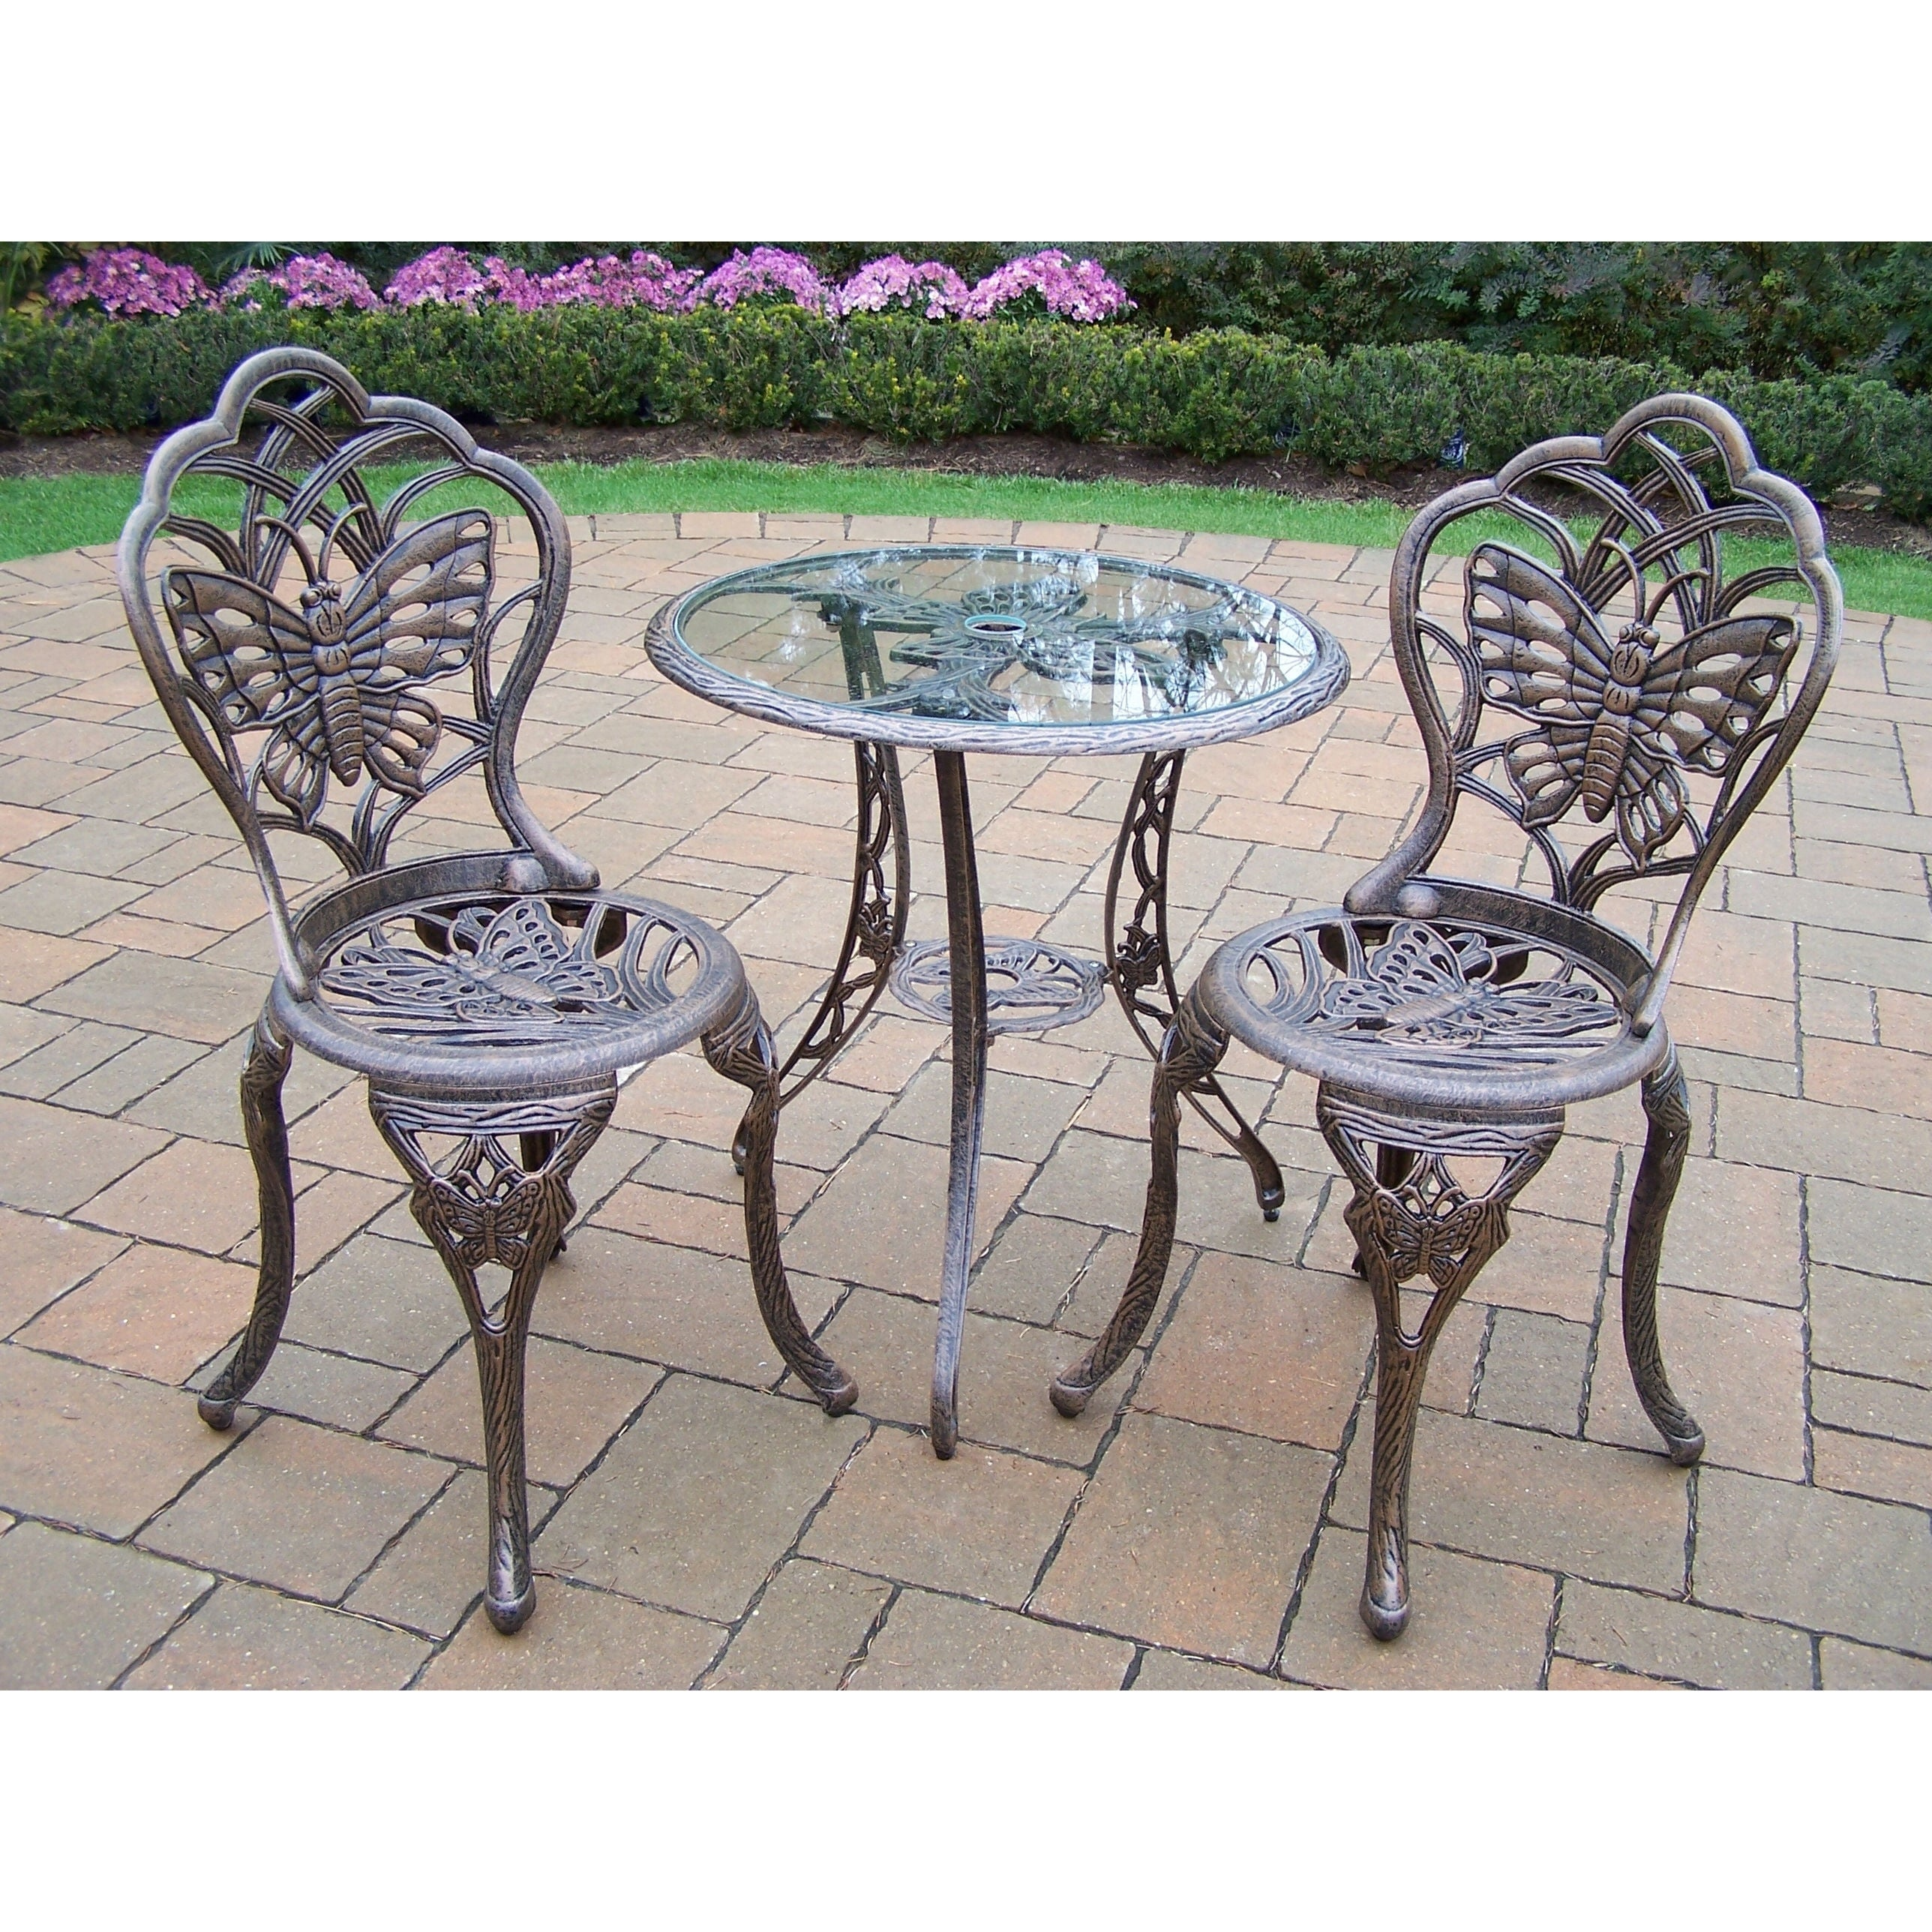 Oakland Corporation 3 Piece Monarch Bistro set with tempe...